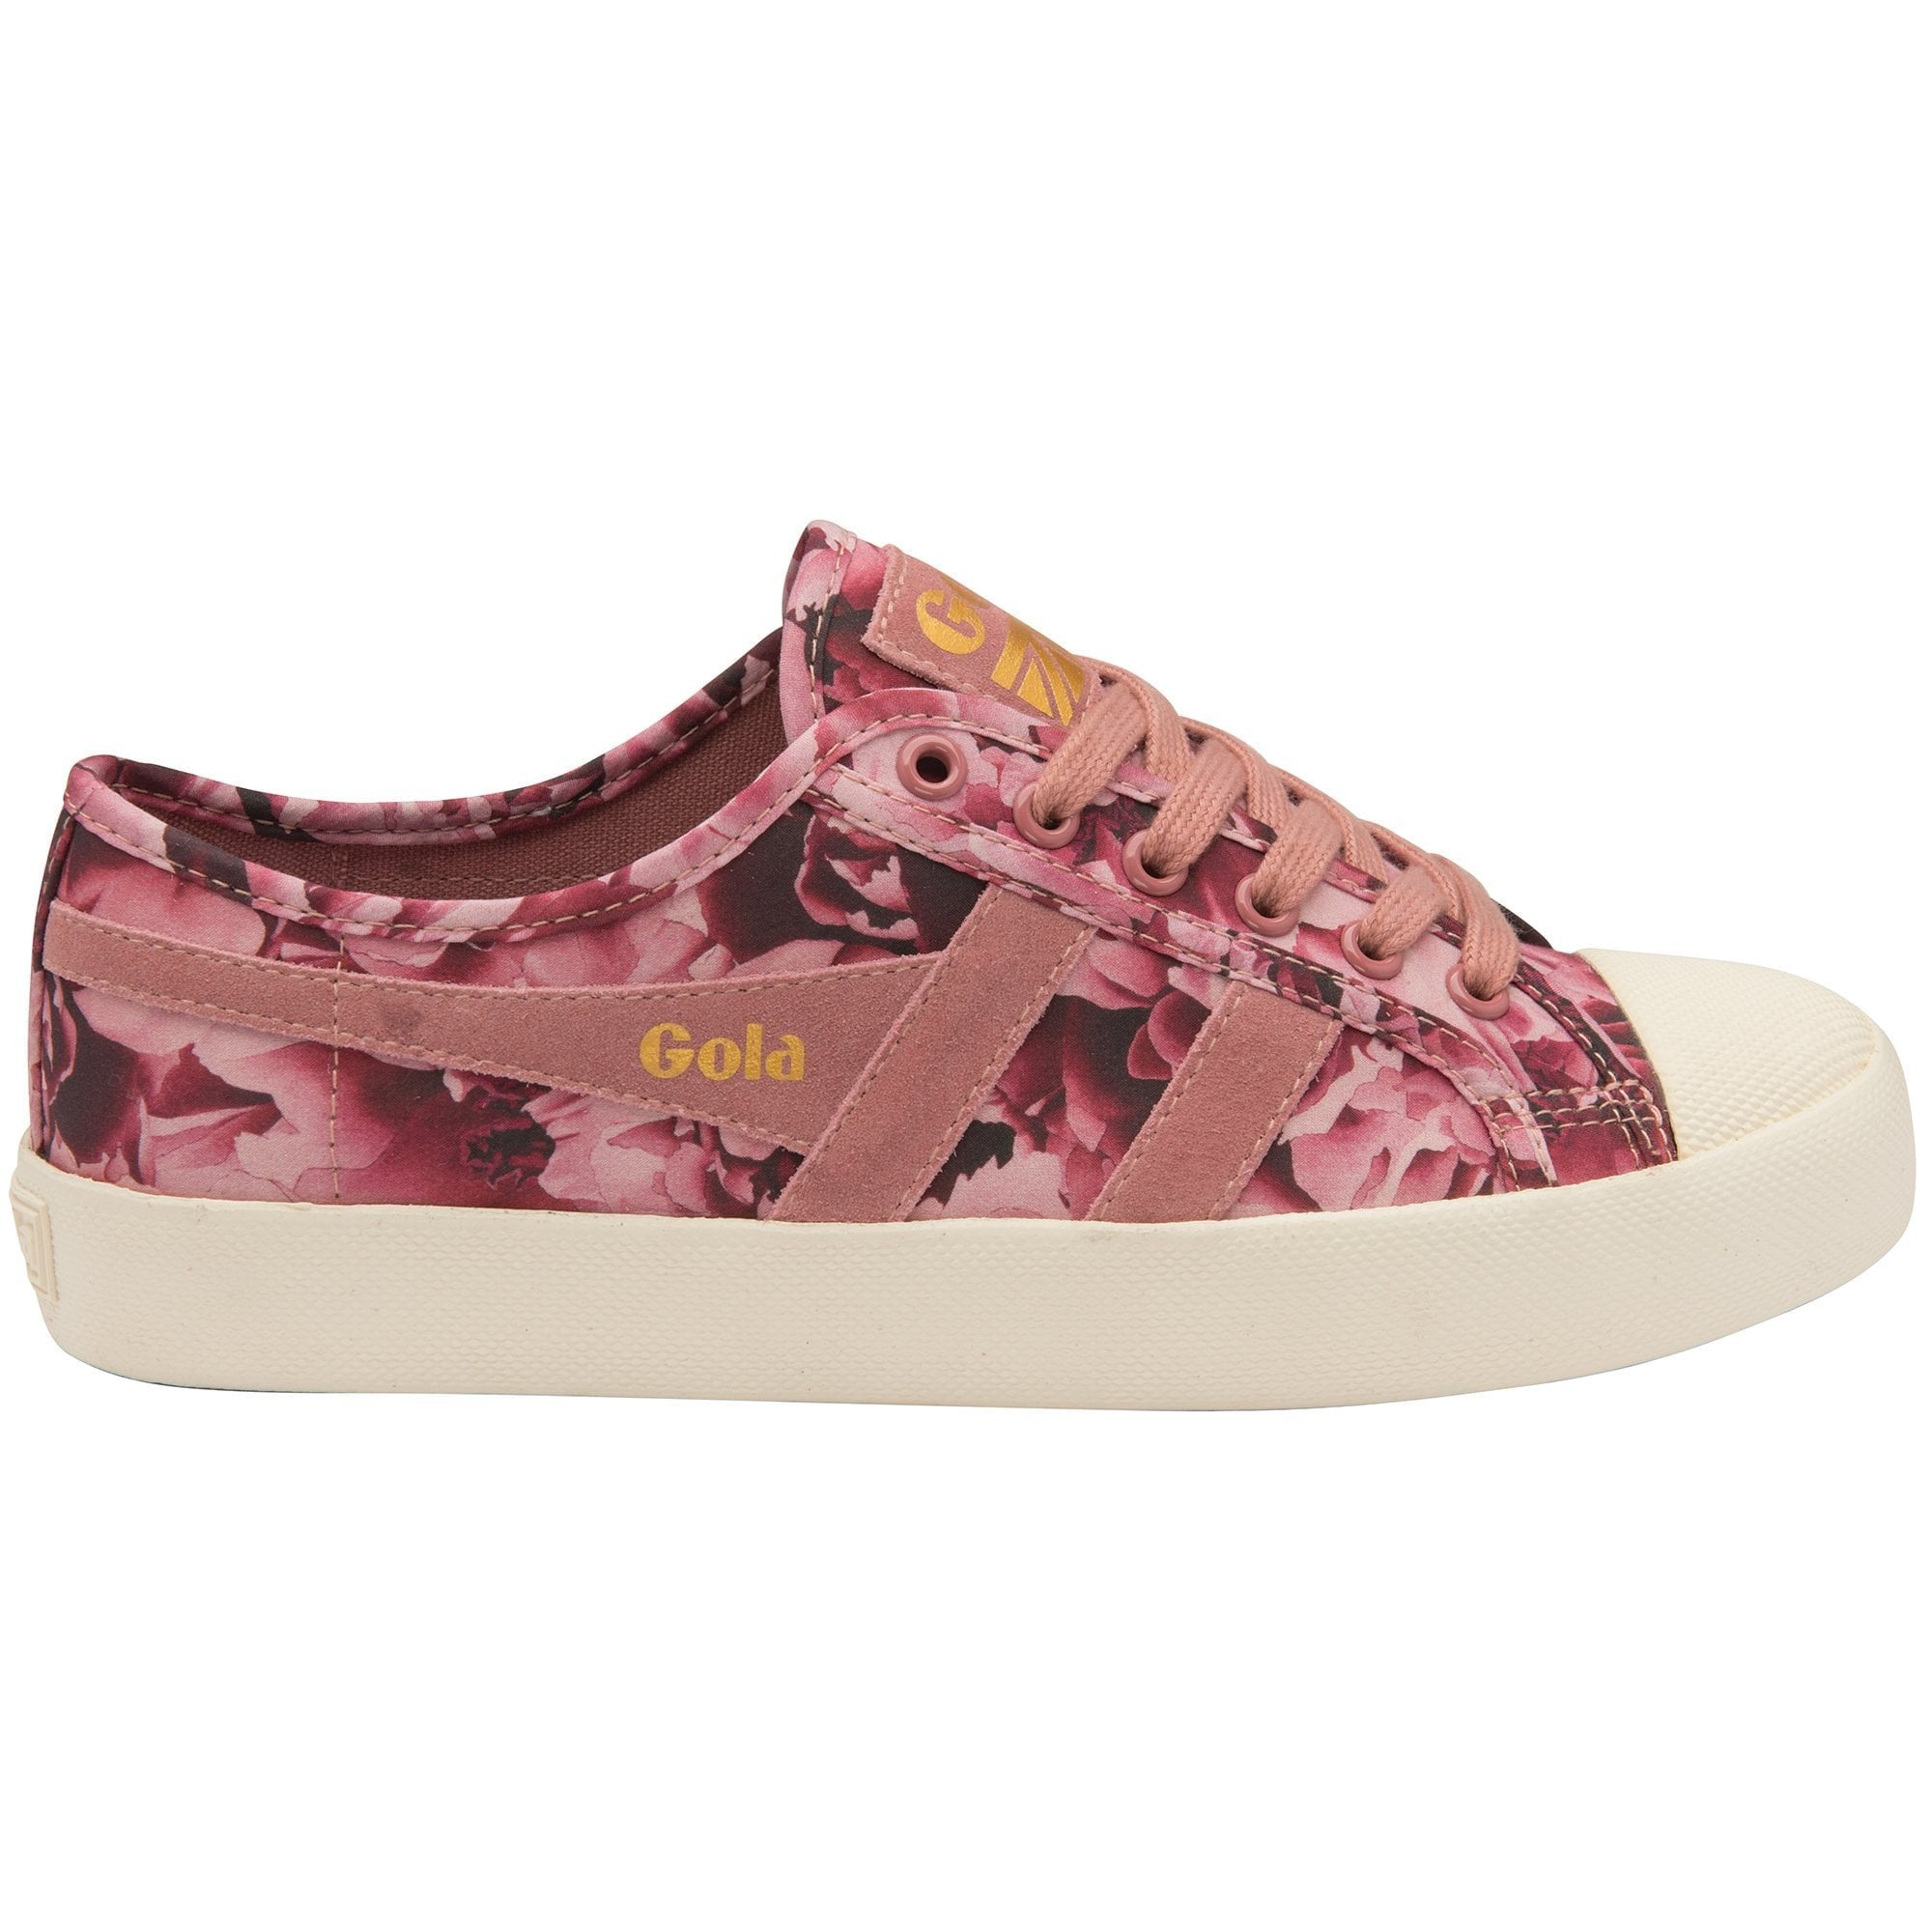 Women's Coaster LBTY EL Sneakers